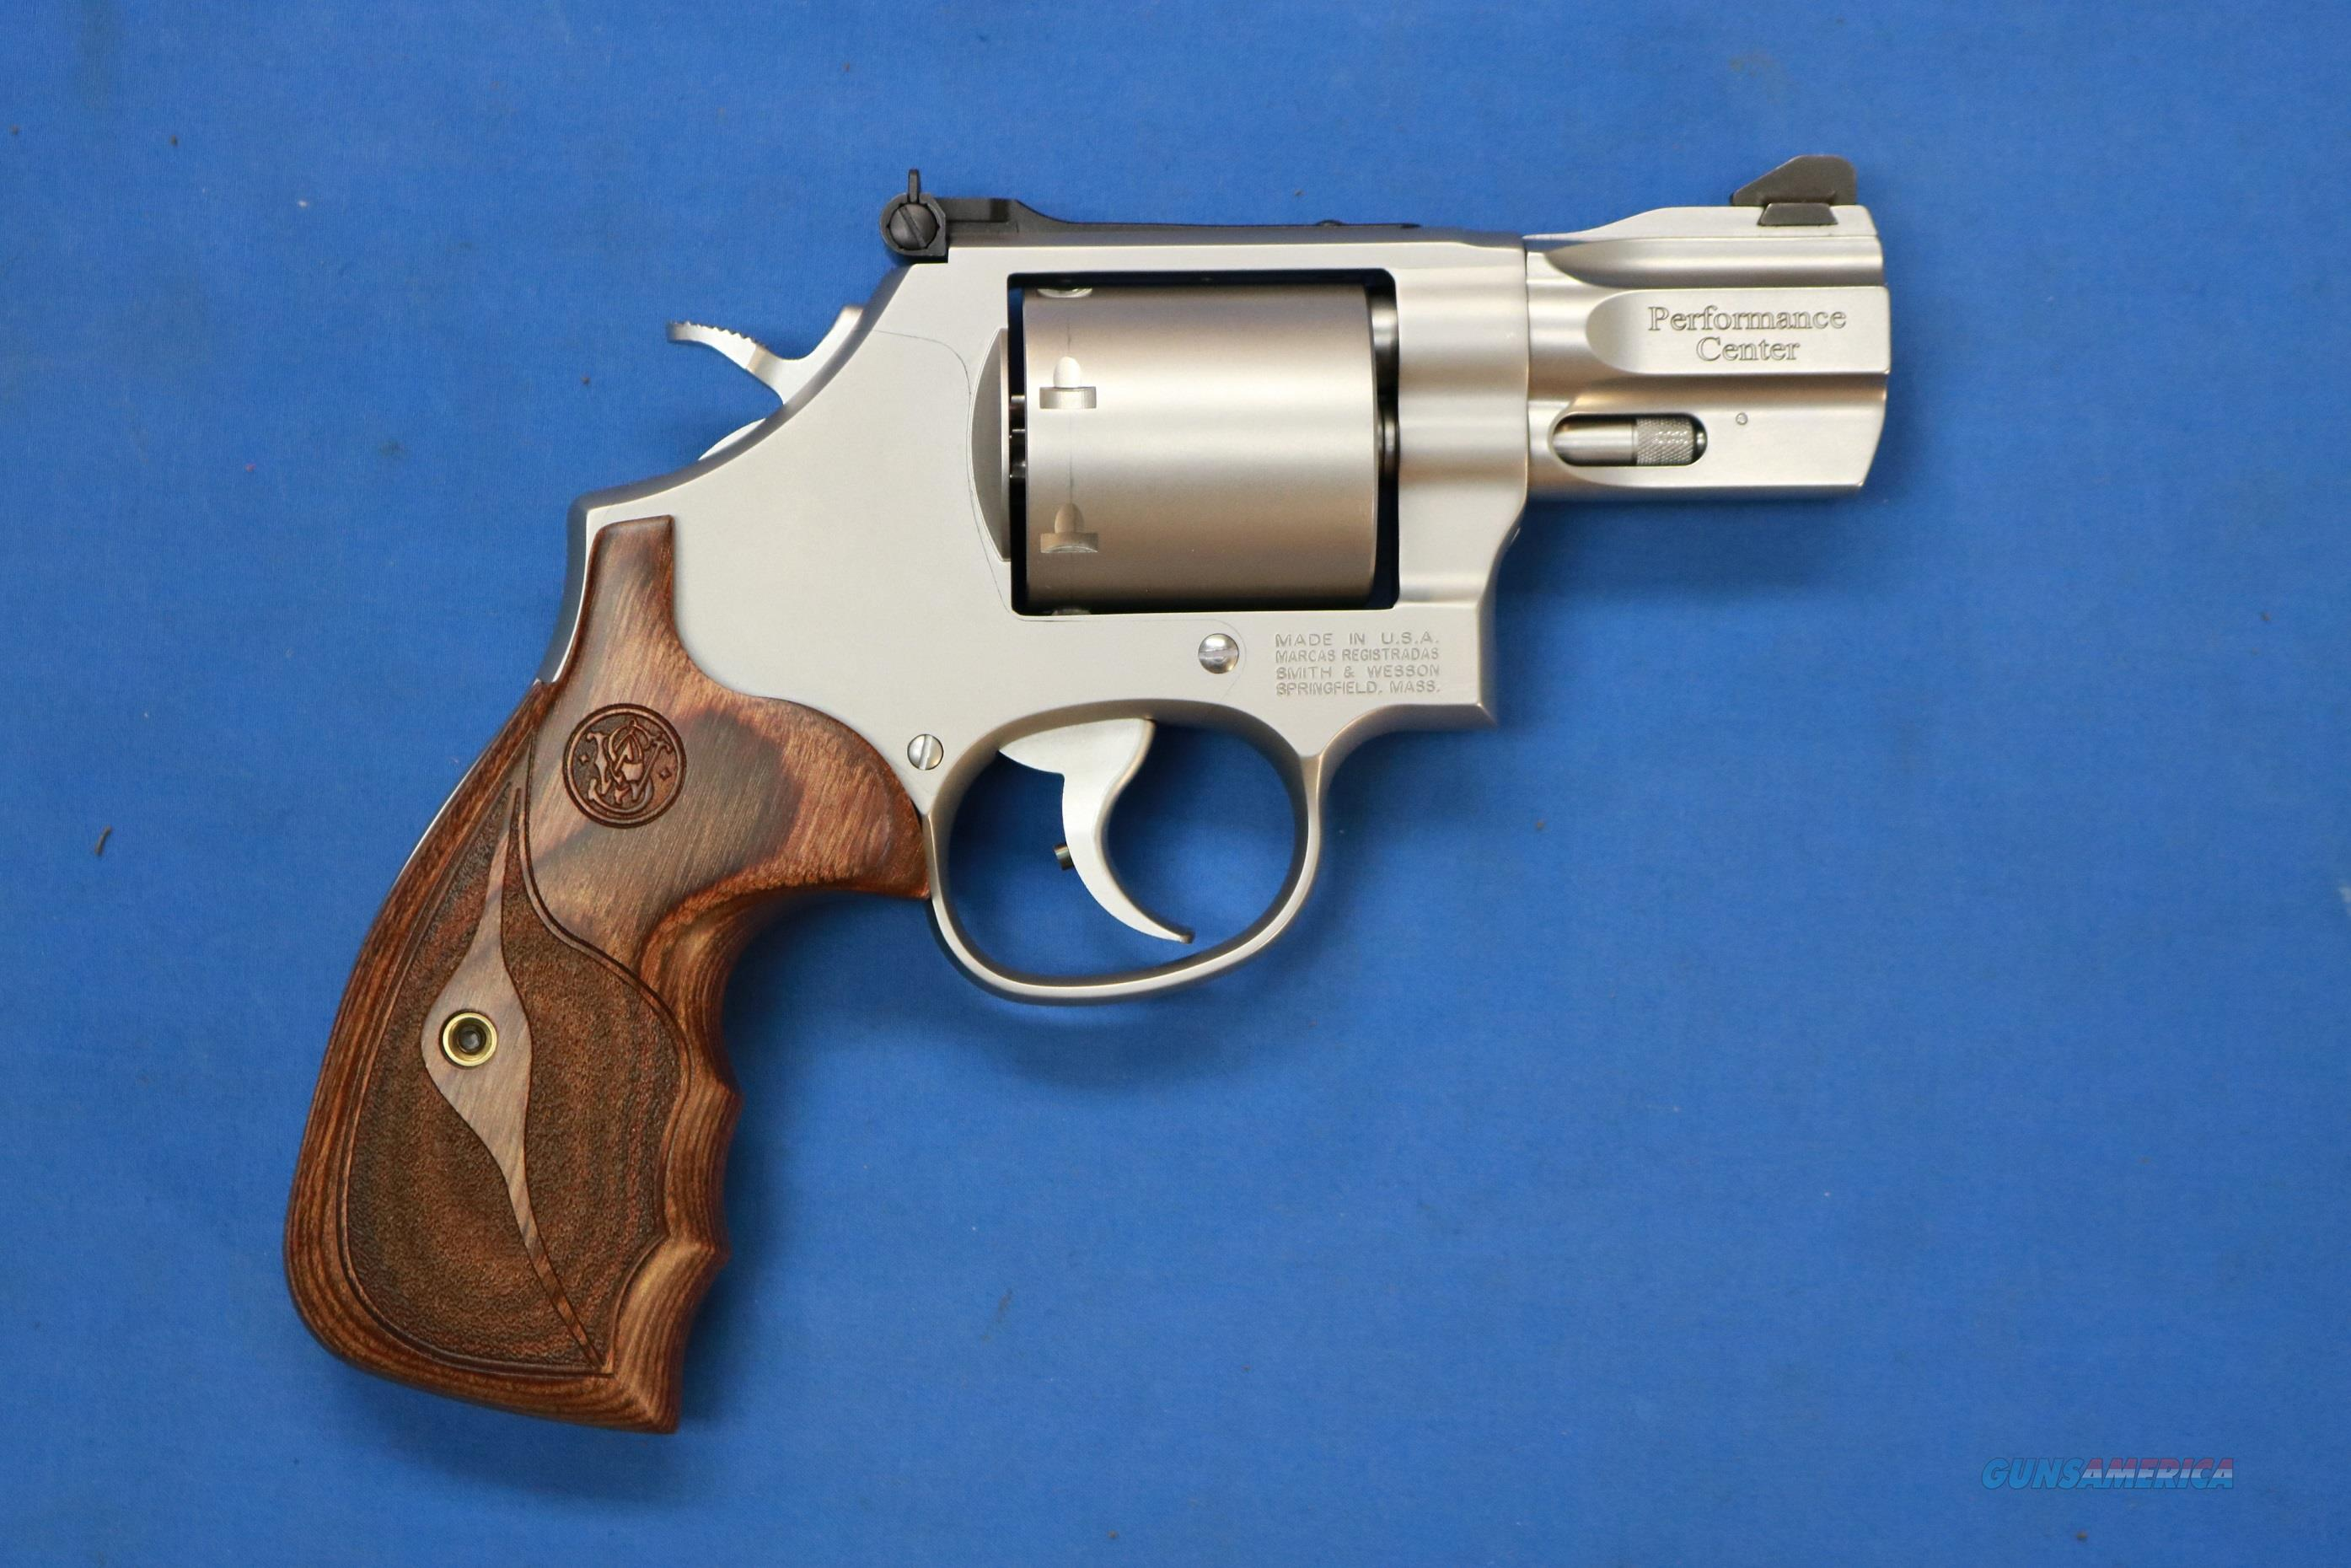 SMITH & WESSON 686 PERFORMANCE CENTER .357 MAG x 7  Guns > Pistols > Smith & Wesson Revolvers > Med. Frame ( K/L )